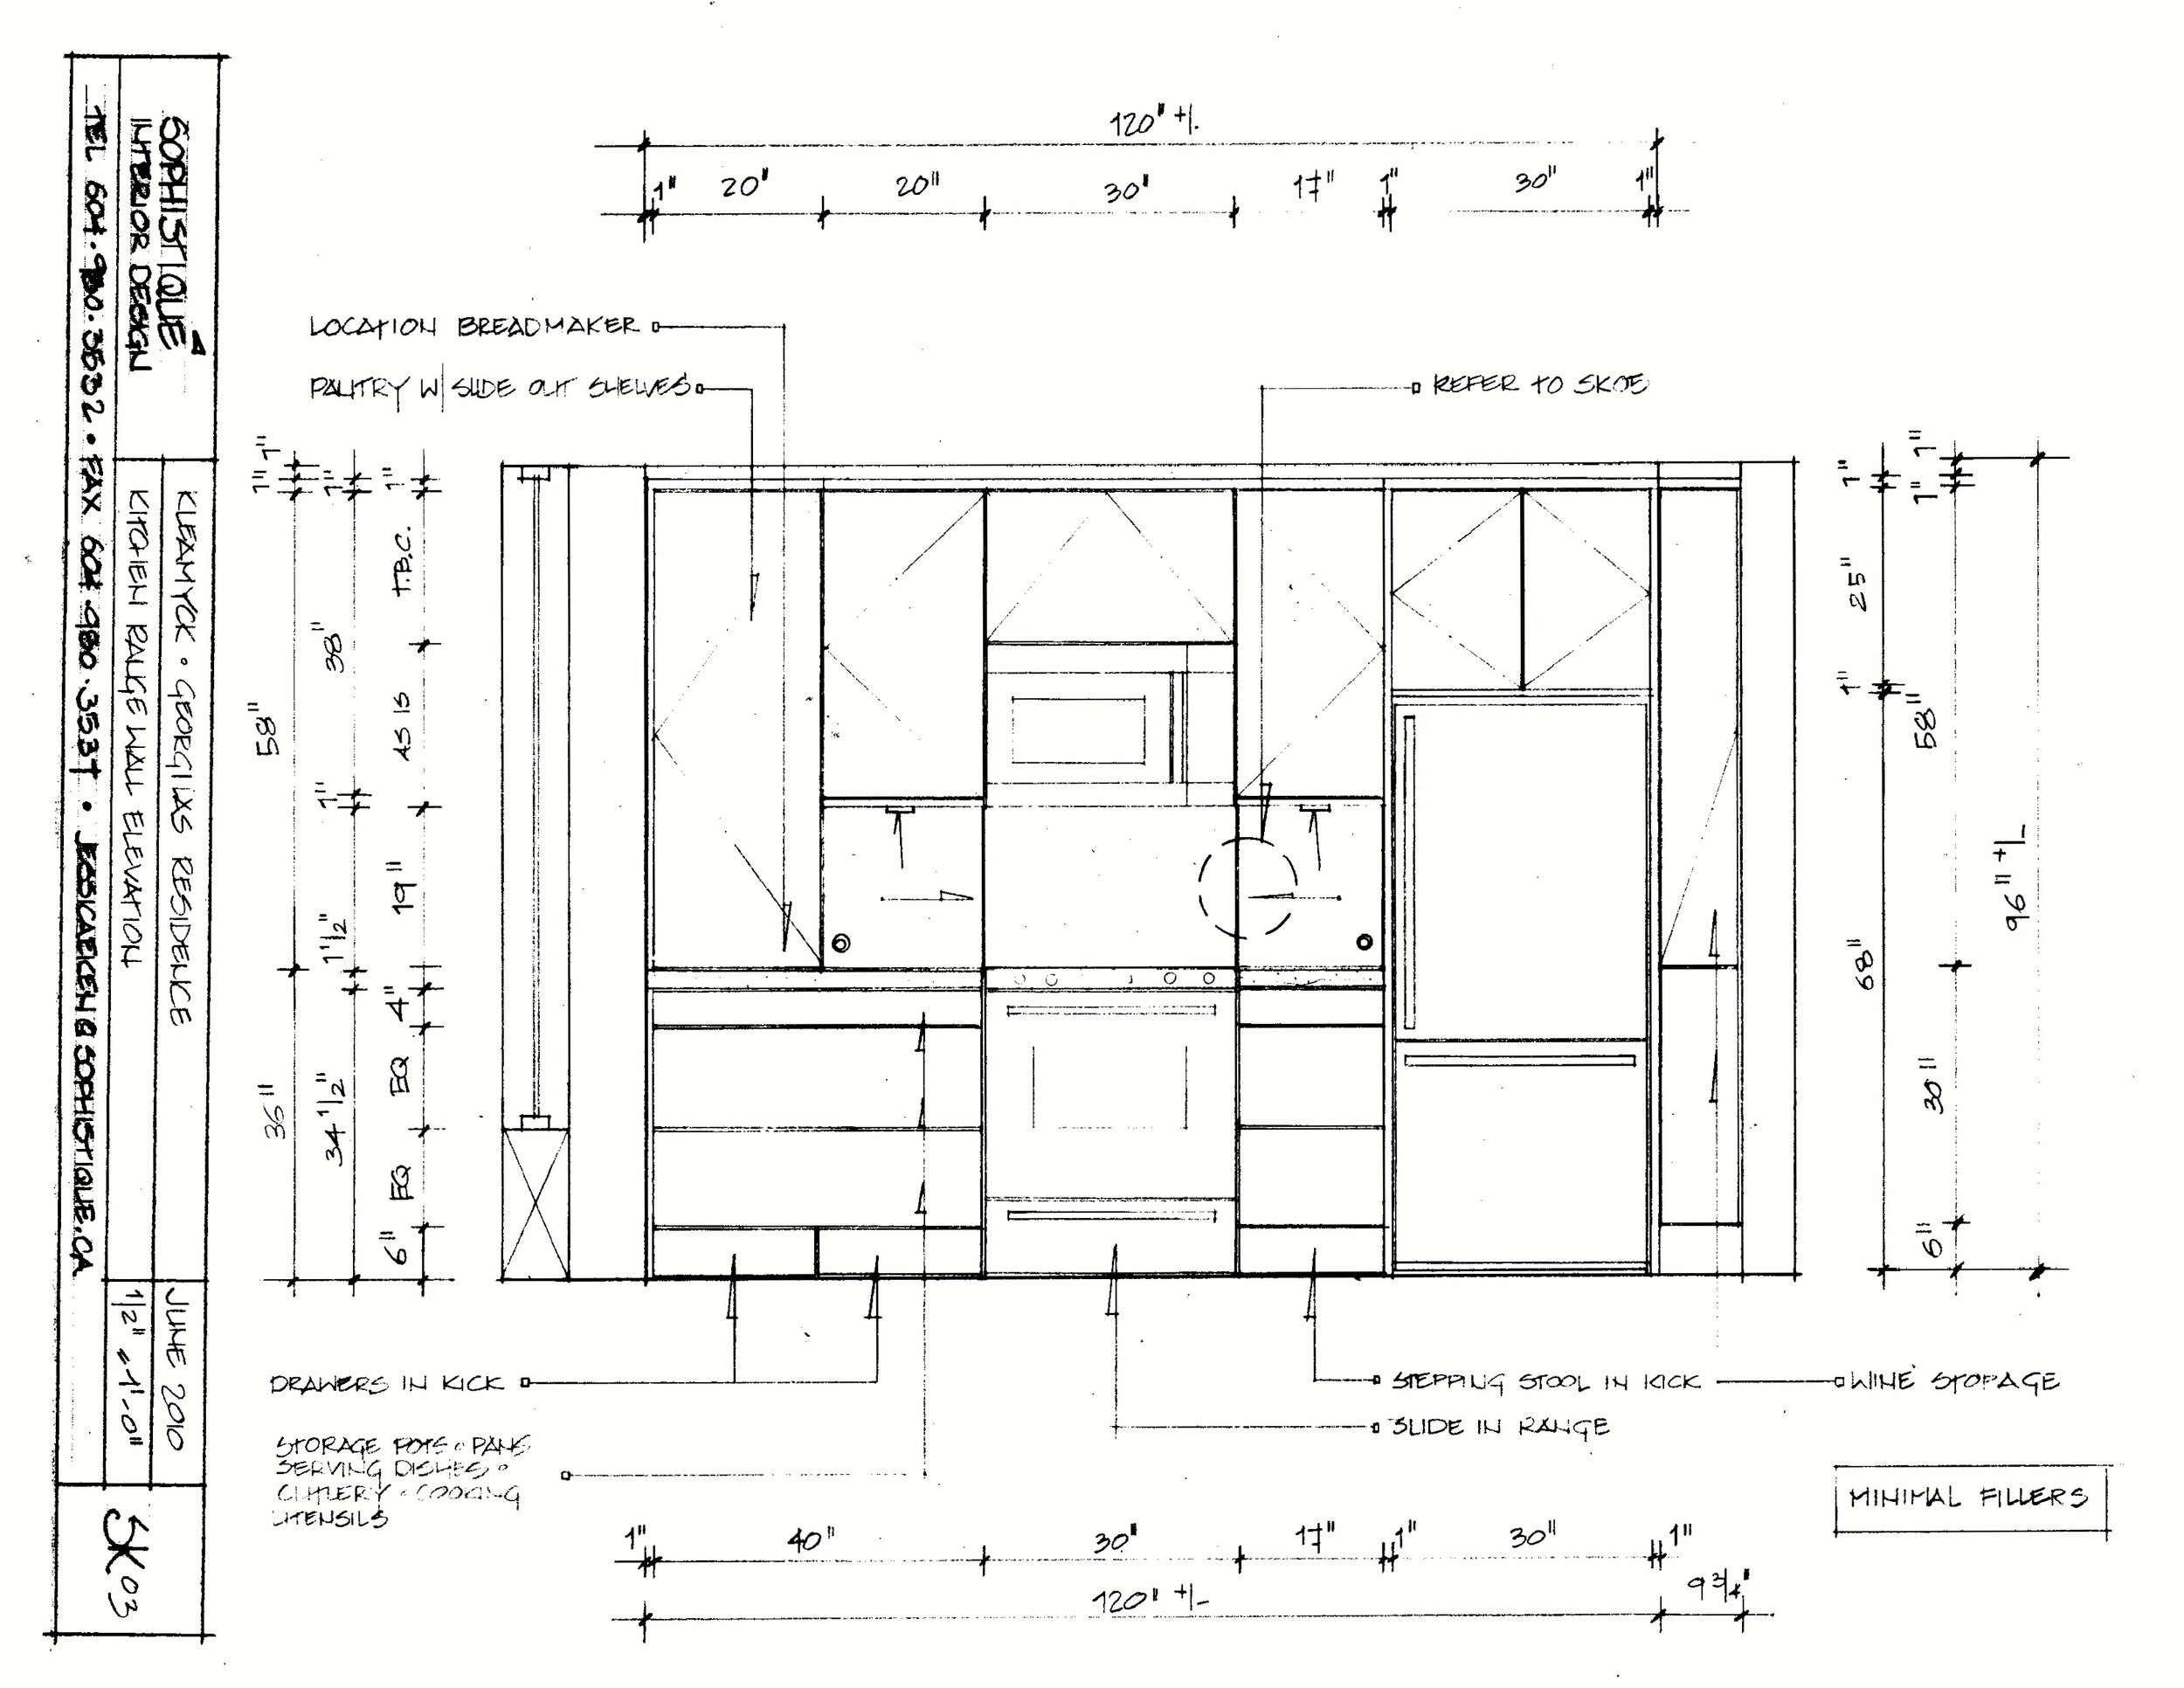 Condo Kitchen Renovation. The copy of the drawing shows that hand-drafting obviously not produce equal line thickness like computer drawings do, although this is not noticeable in the original pencil drawing. This variation is also not noticeable in 'blue prints'.